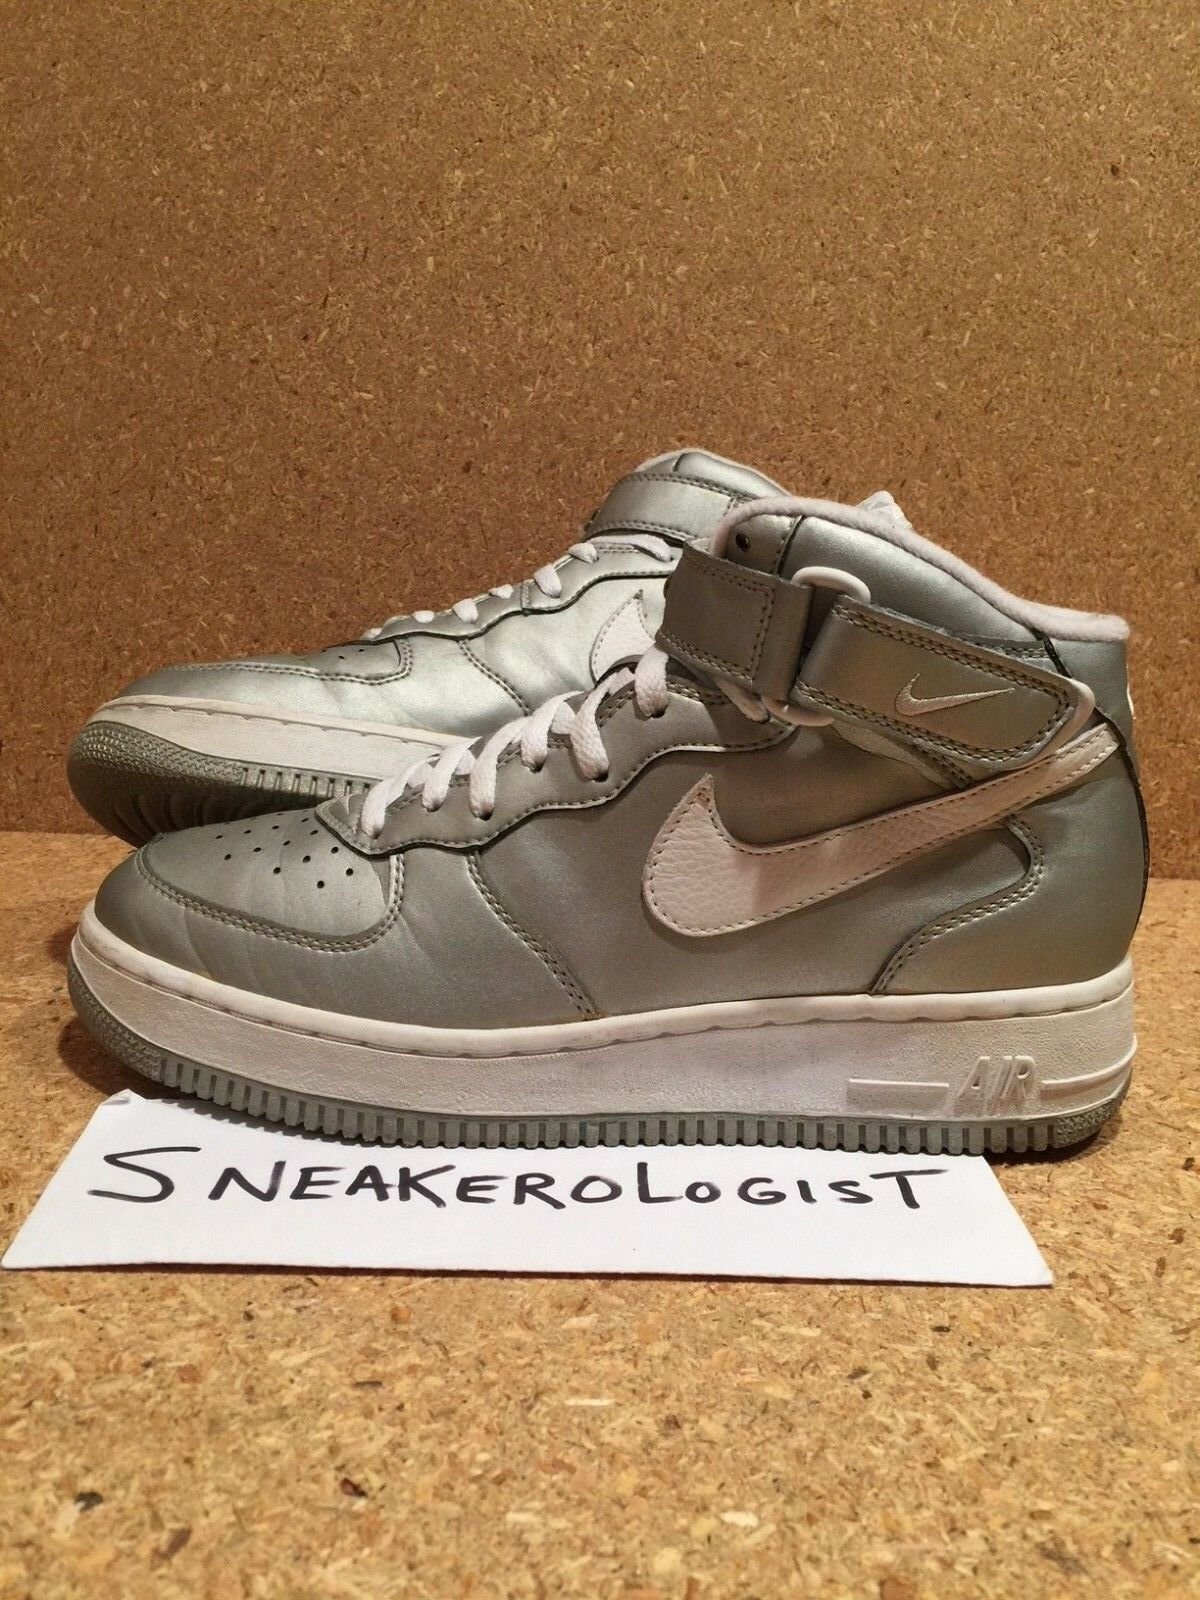 SAMPLE NIKE AIR FORCE 1 MID SC SZ 9 silver pearlized white 1997 vintage rare le